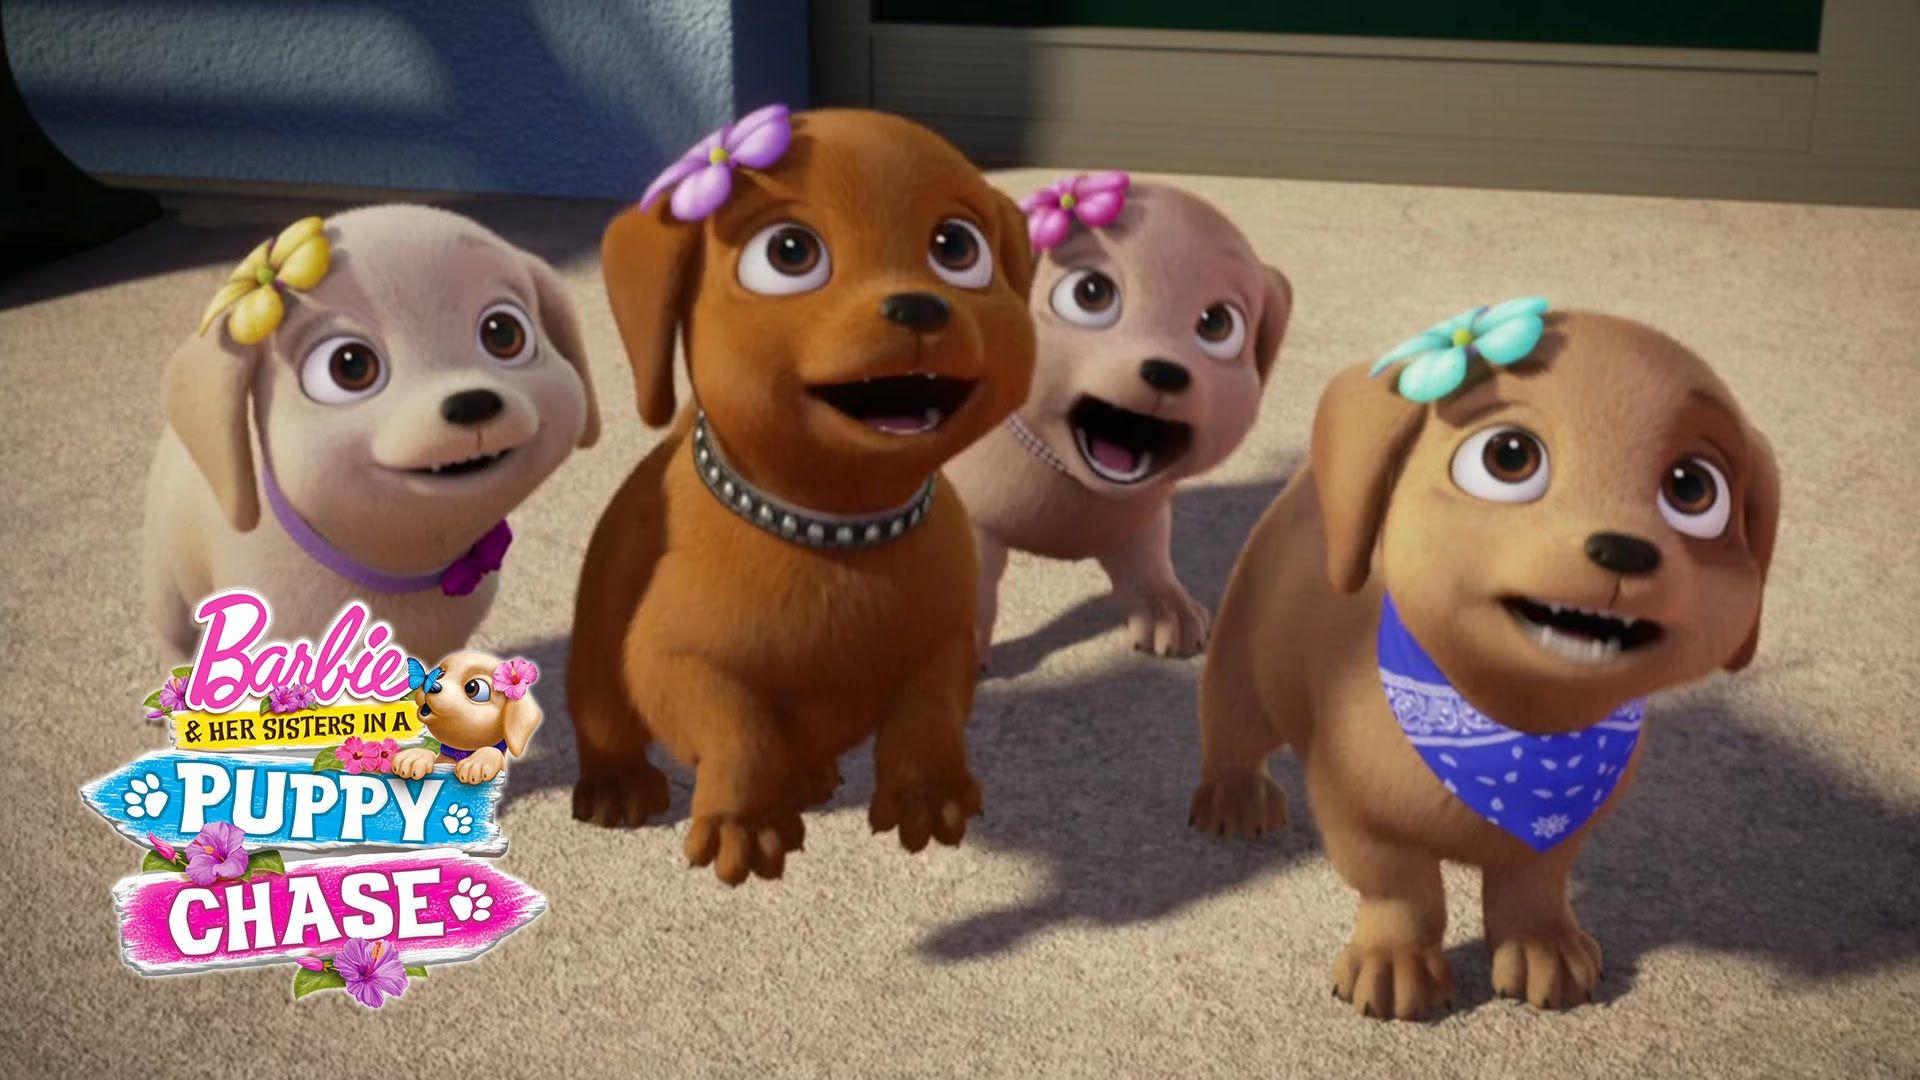 Barbie Her Sisters In A Puppy Chase Teaser Barbie Barbie And Her Sisters Barbie Movies Disney Princess Modern